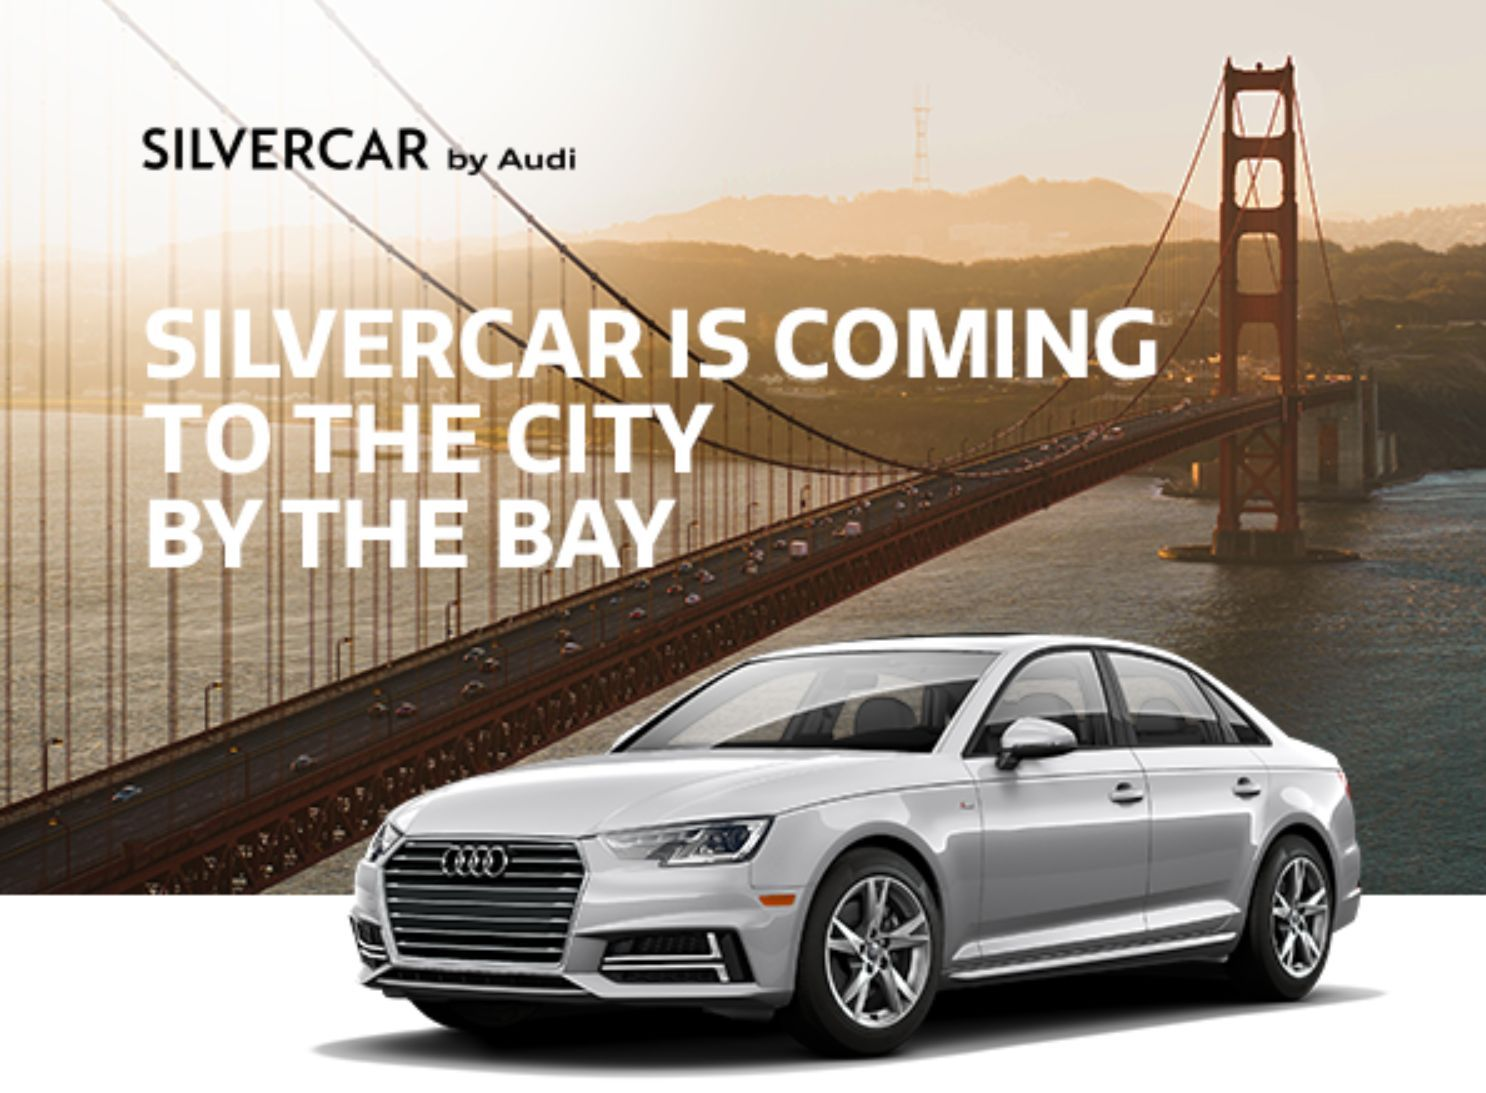 Silvercar Is Coming To Downtown San Francisco